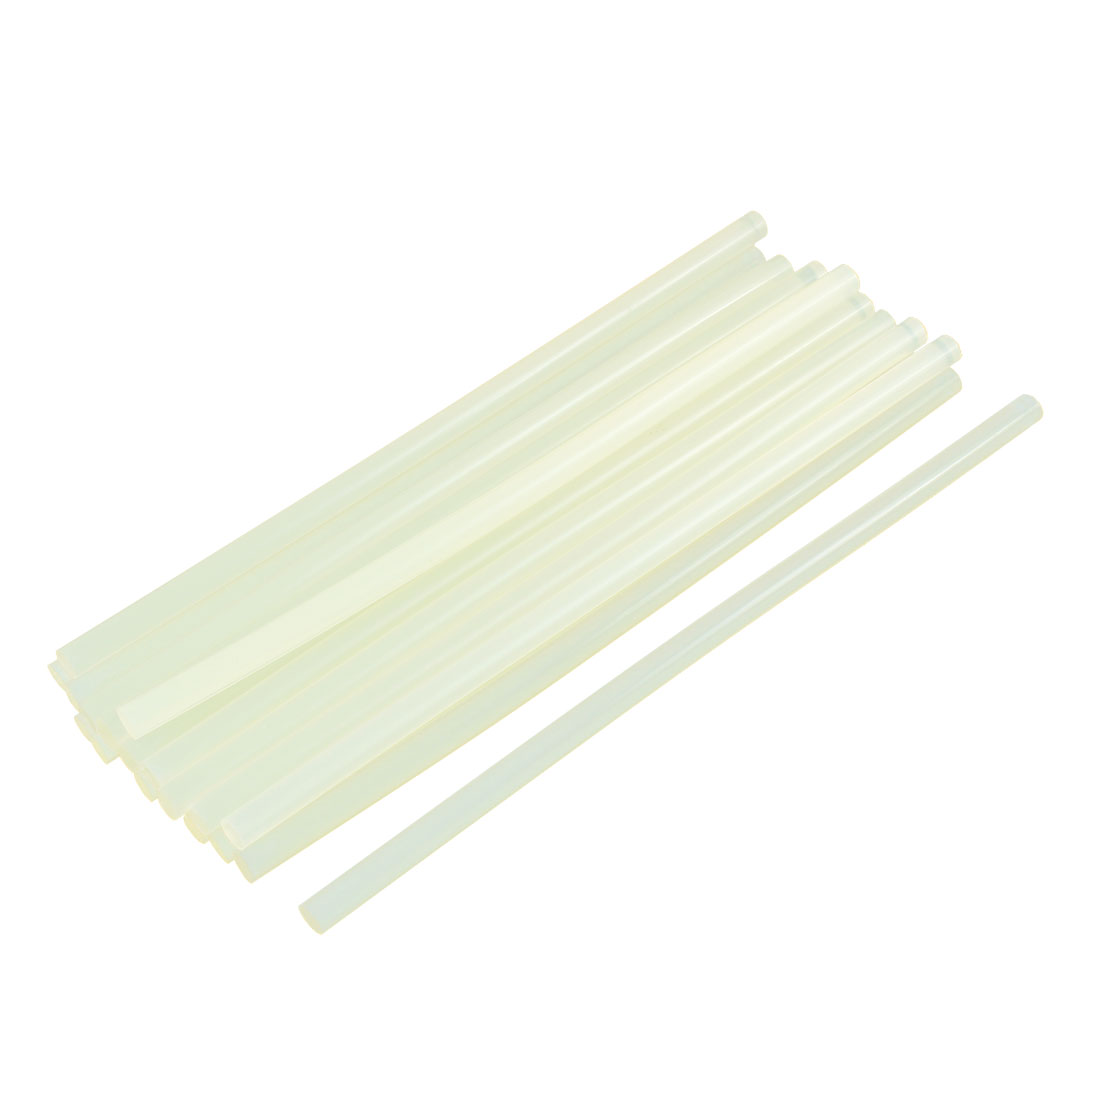 Translucence Crafting Model Hot Melt Glue Adhesive Sticks 200mm x 7mm 20pcs